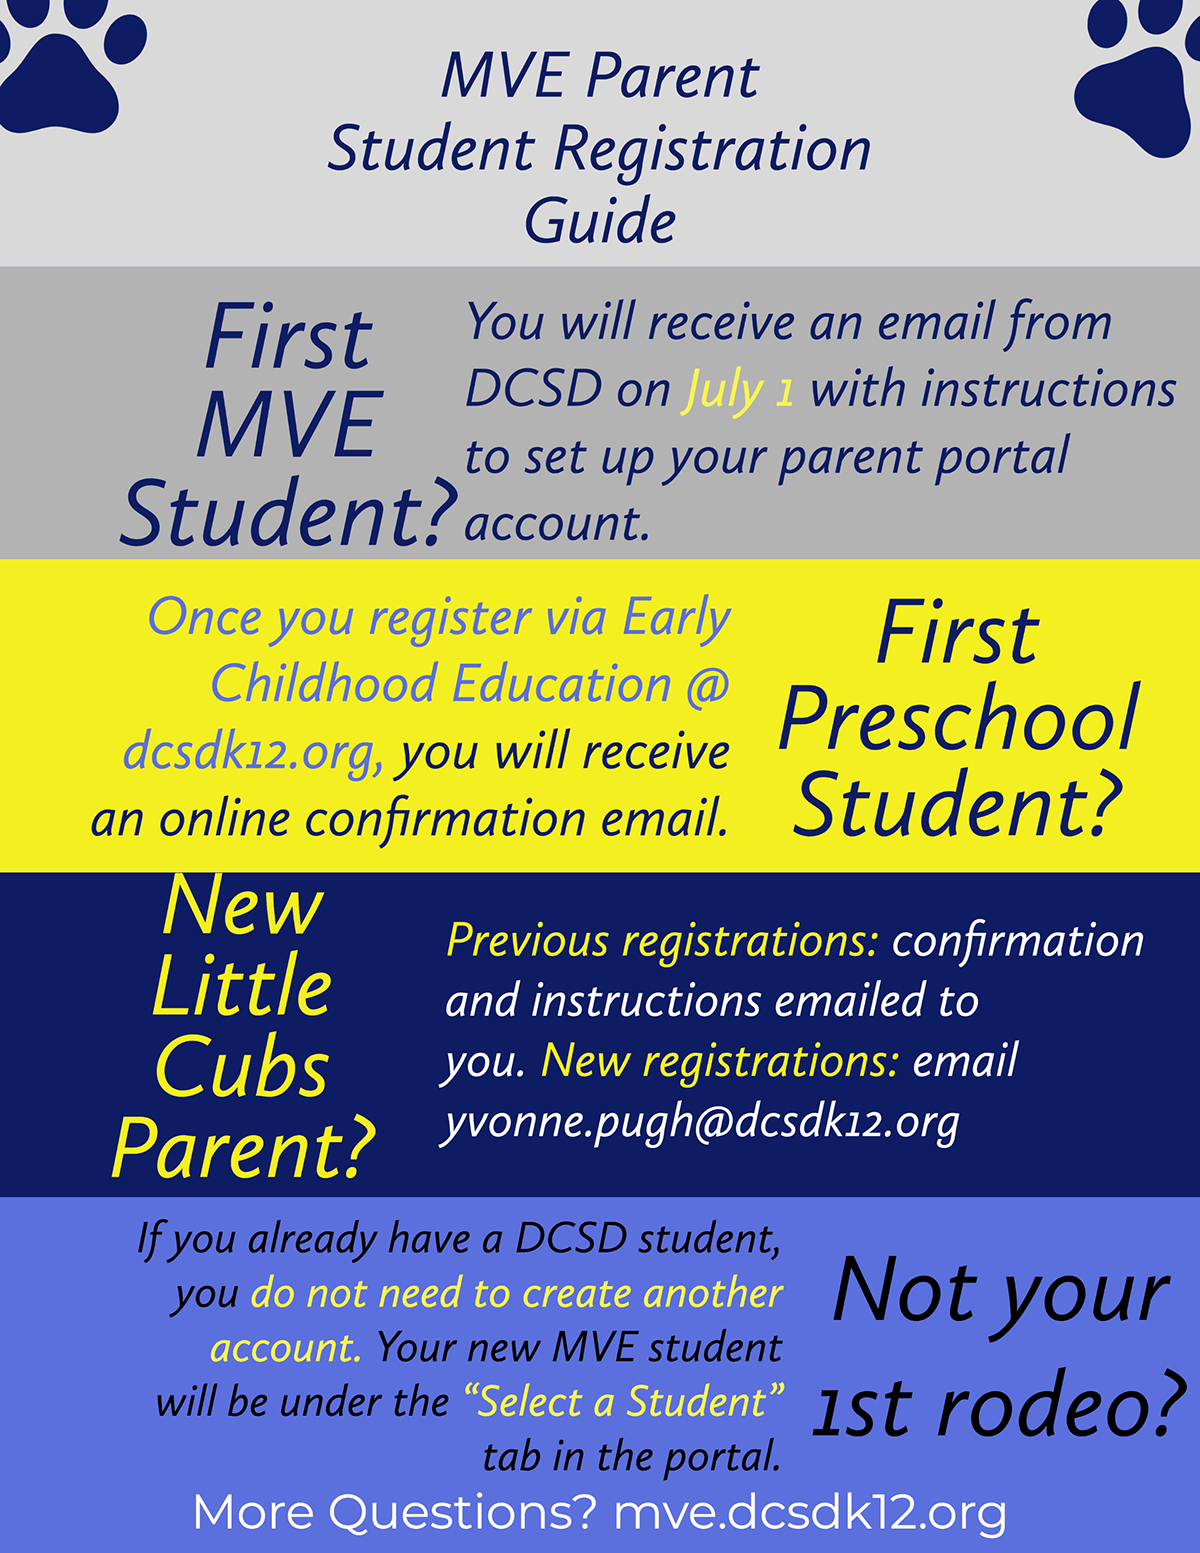 "First MVE Student? First MVE Student? First Preschool Student? Not your 1st rodeo? New Little Cubs Parent? MVE Parent Student Registration Guide More Questions? mve.dcsdk12.org Once you register via Early Childhood Education @ dcsdk12.org, you will receive an online confirmation email. You will receive an email from DCSD on July 1 with instructions to set up your parent portal account. Previous registrations: confirmation and instructions emailed to you. New registrations: email yvonne.pugh@dcsdk12.org If you already have a DCSD student, you do not need to create another account. Your new MVE student will be under the ""Select a Student"" tab in the portal."